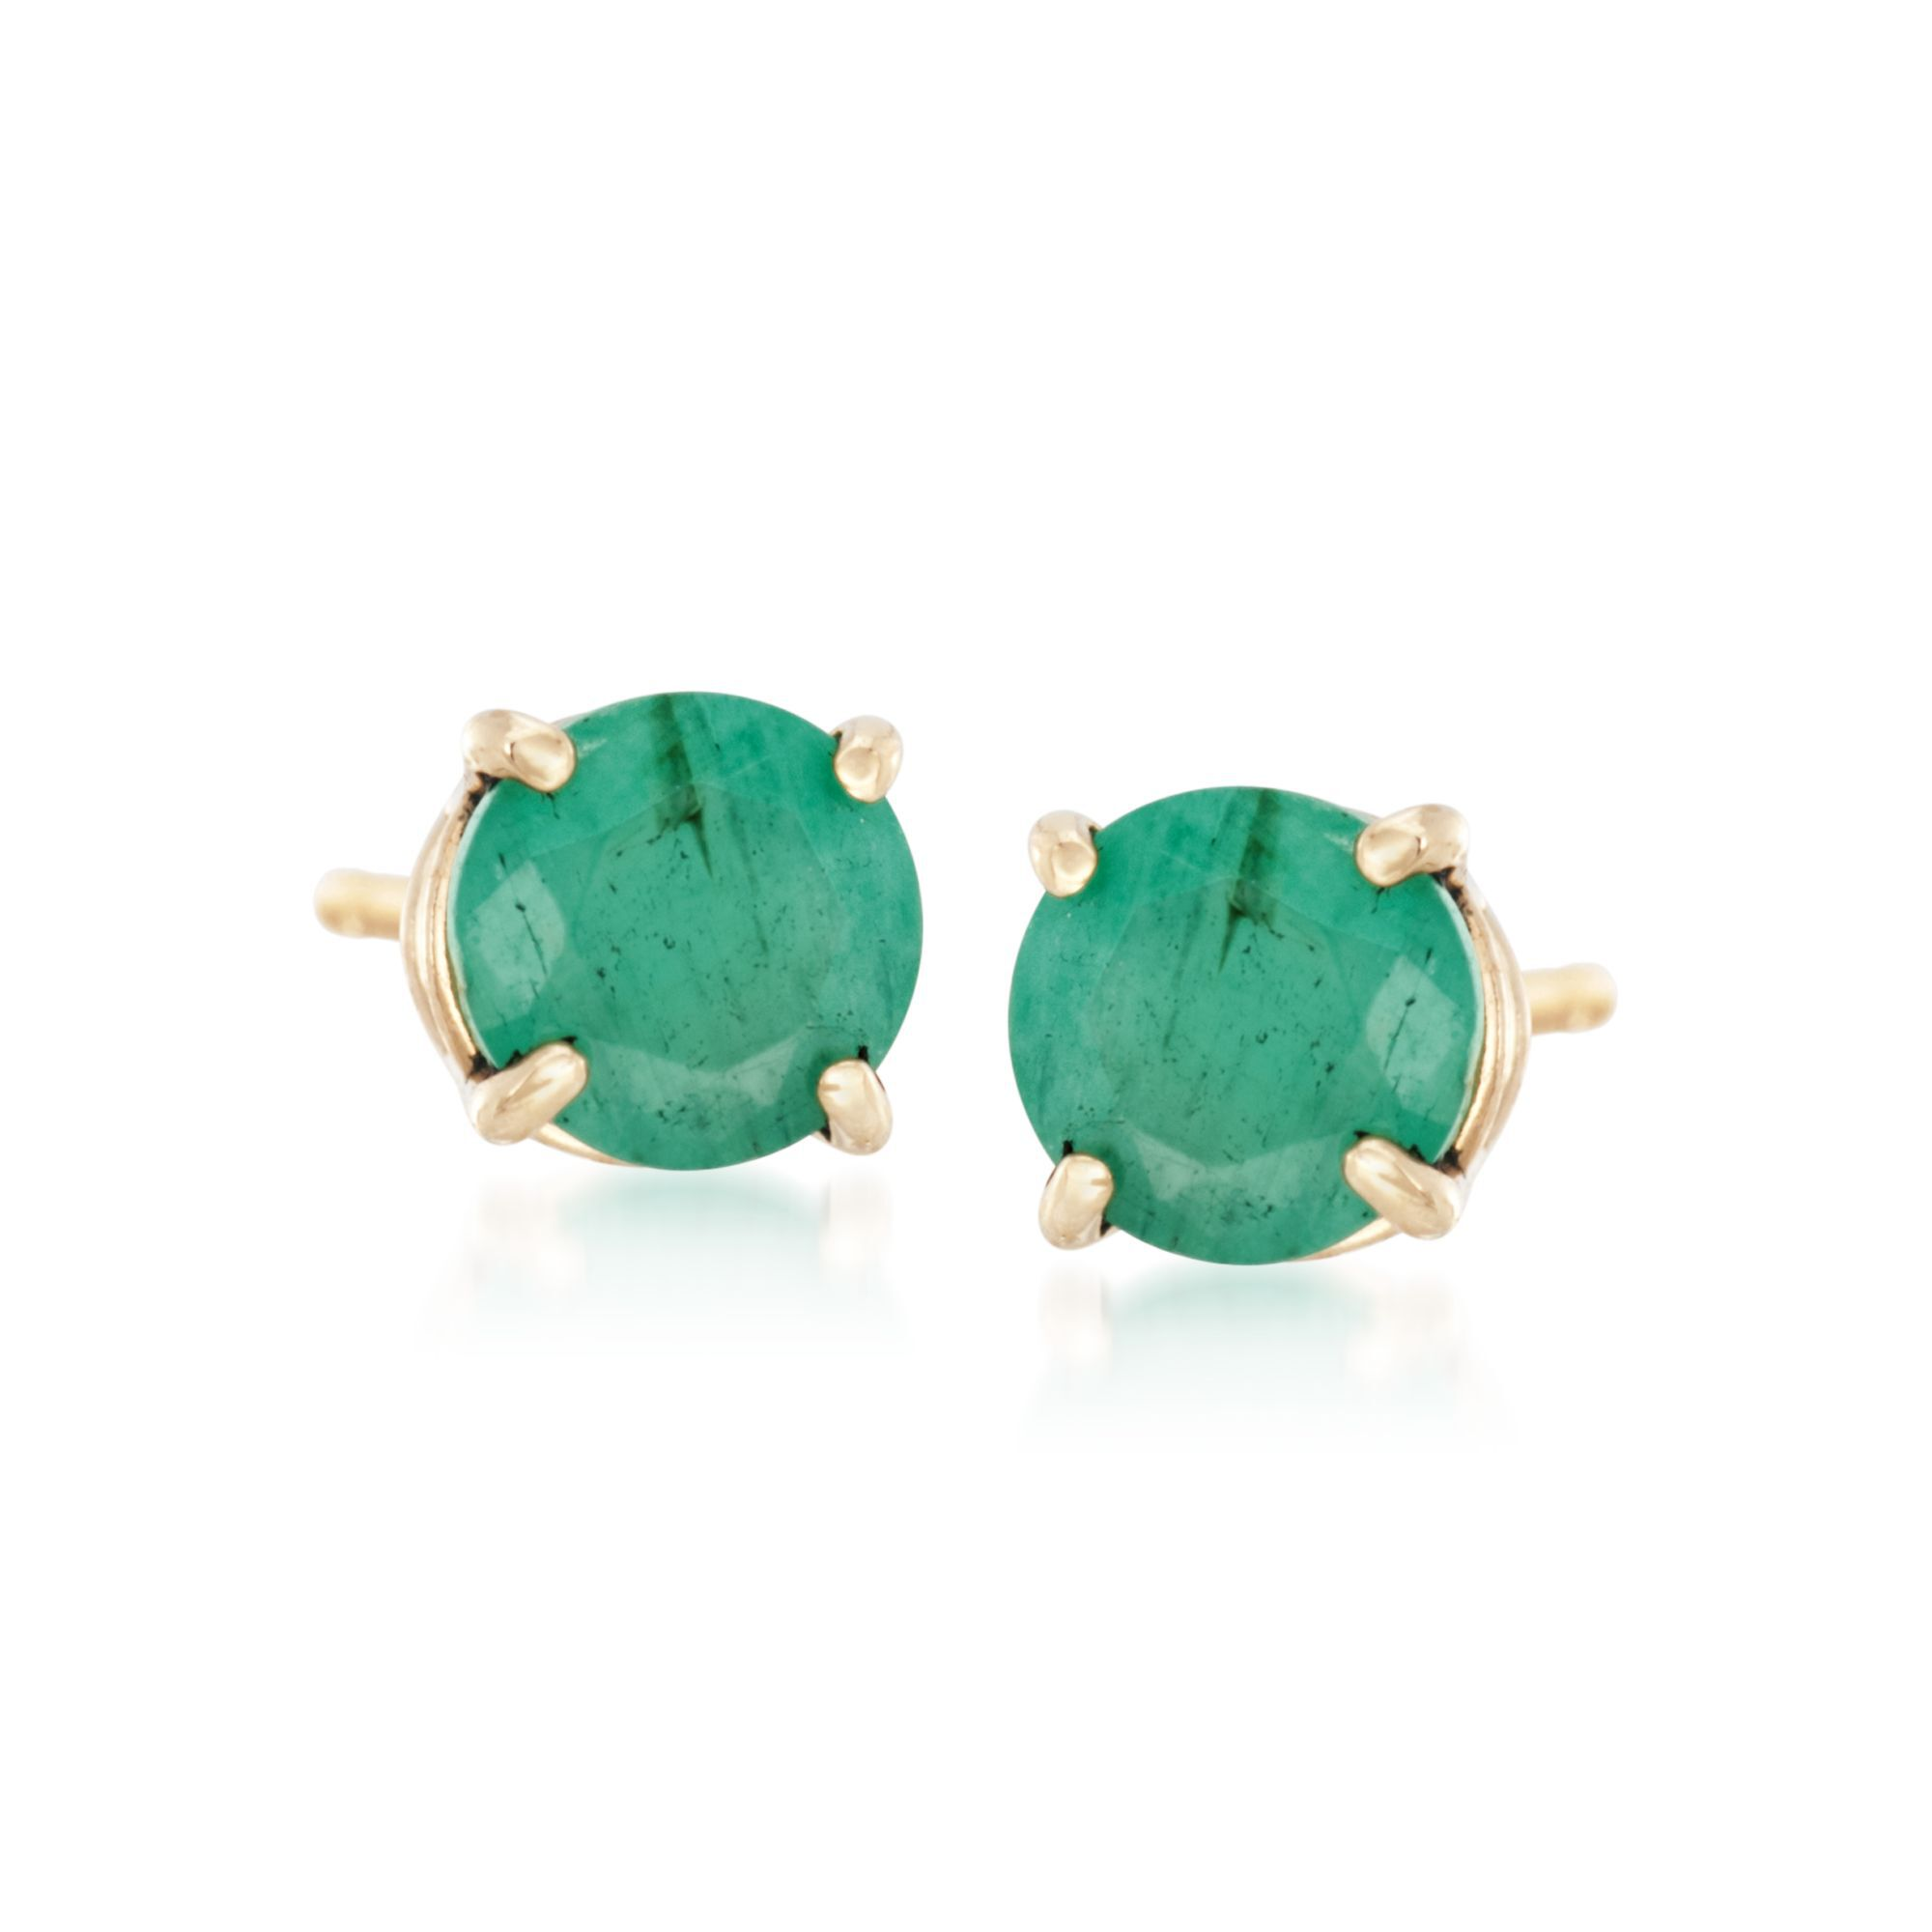 1.00 Ct Emerald Cut Green Emerald Four Prong Stud Earrings 14K Yellow Gold Over